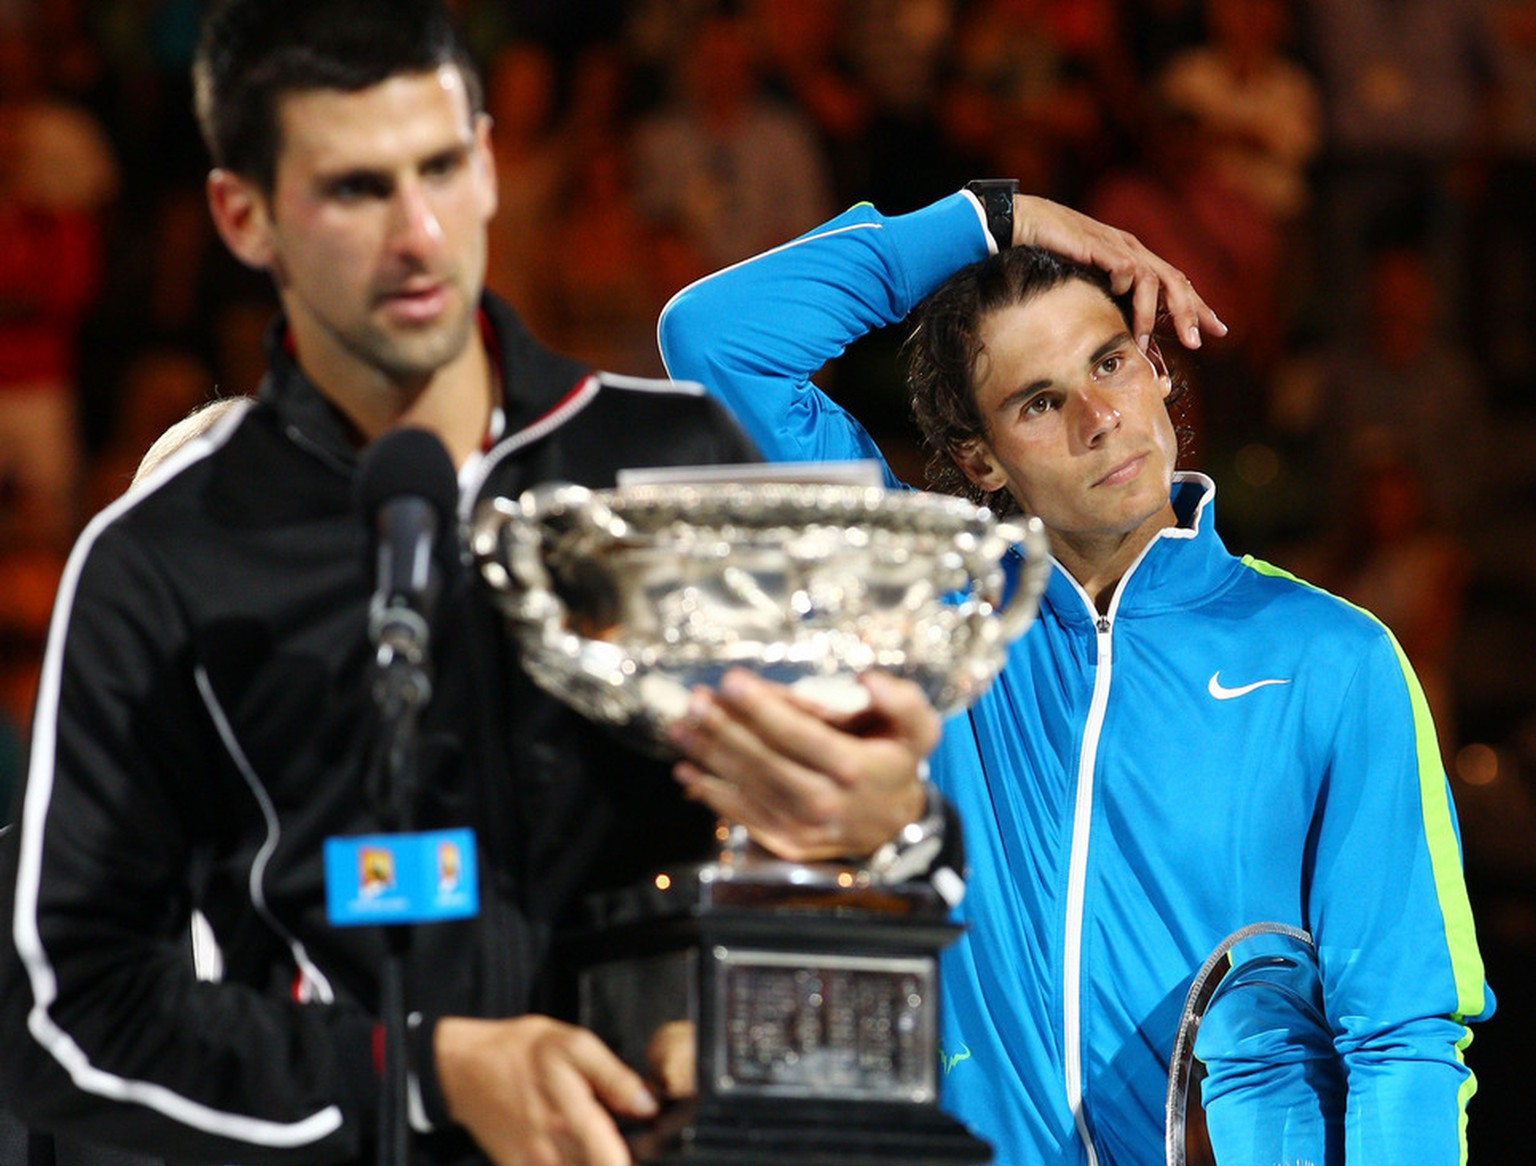 Spain's Rafael Nadal, right, looks on as Serbia's Novak Djokovic addresses the crowd after winning the men's singles final against  at the Australian Open tennis championship, in Melbourne, Australia, early Monday, Jan. 30, 2012. (AP Photo/Rick Rycroft)